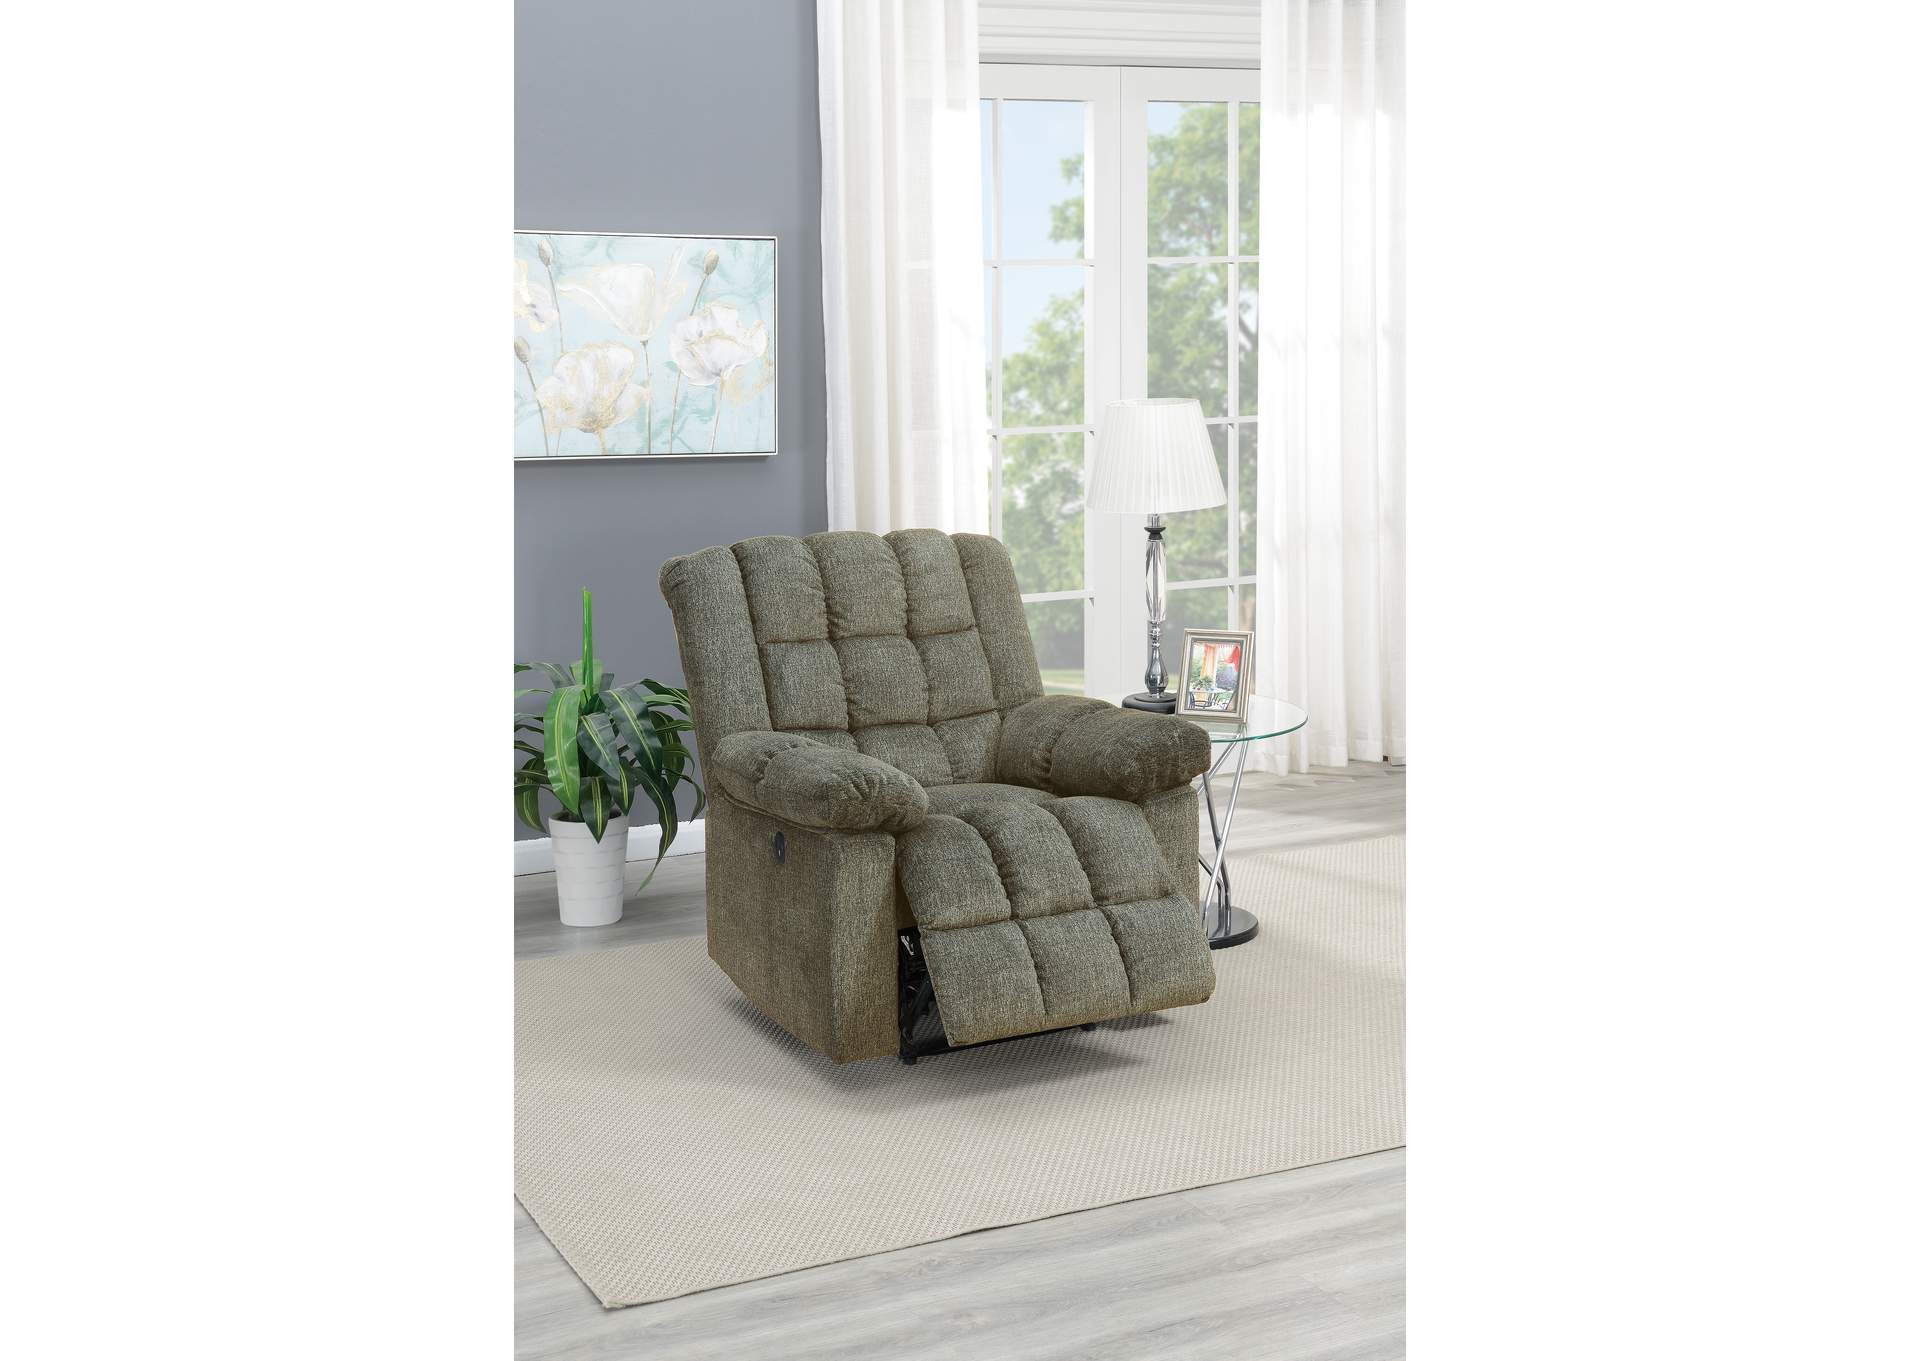 Taiyus Tan Chenille Power Recliner,Poundex